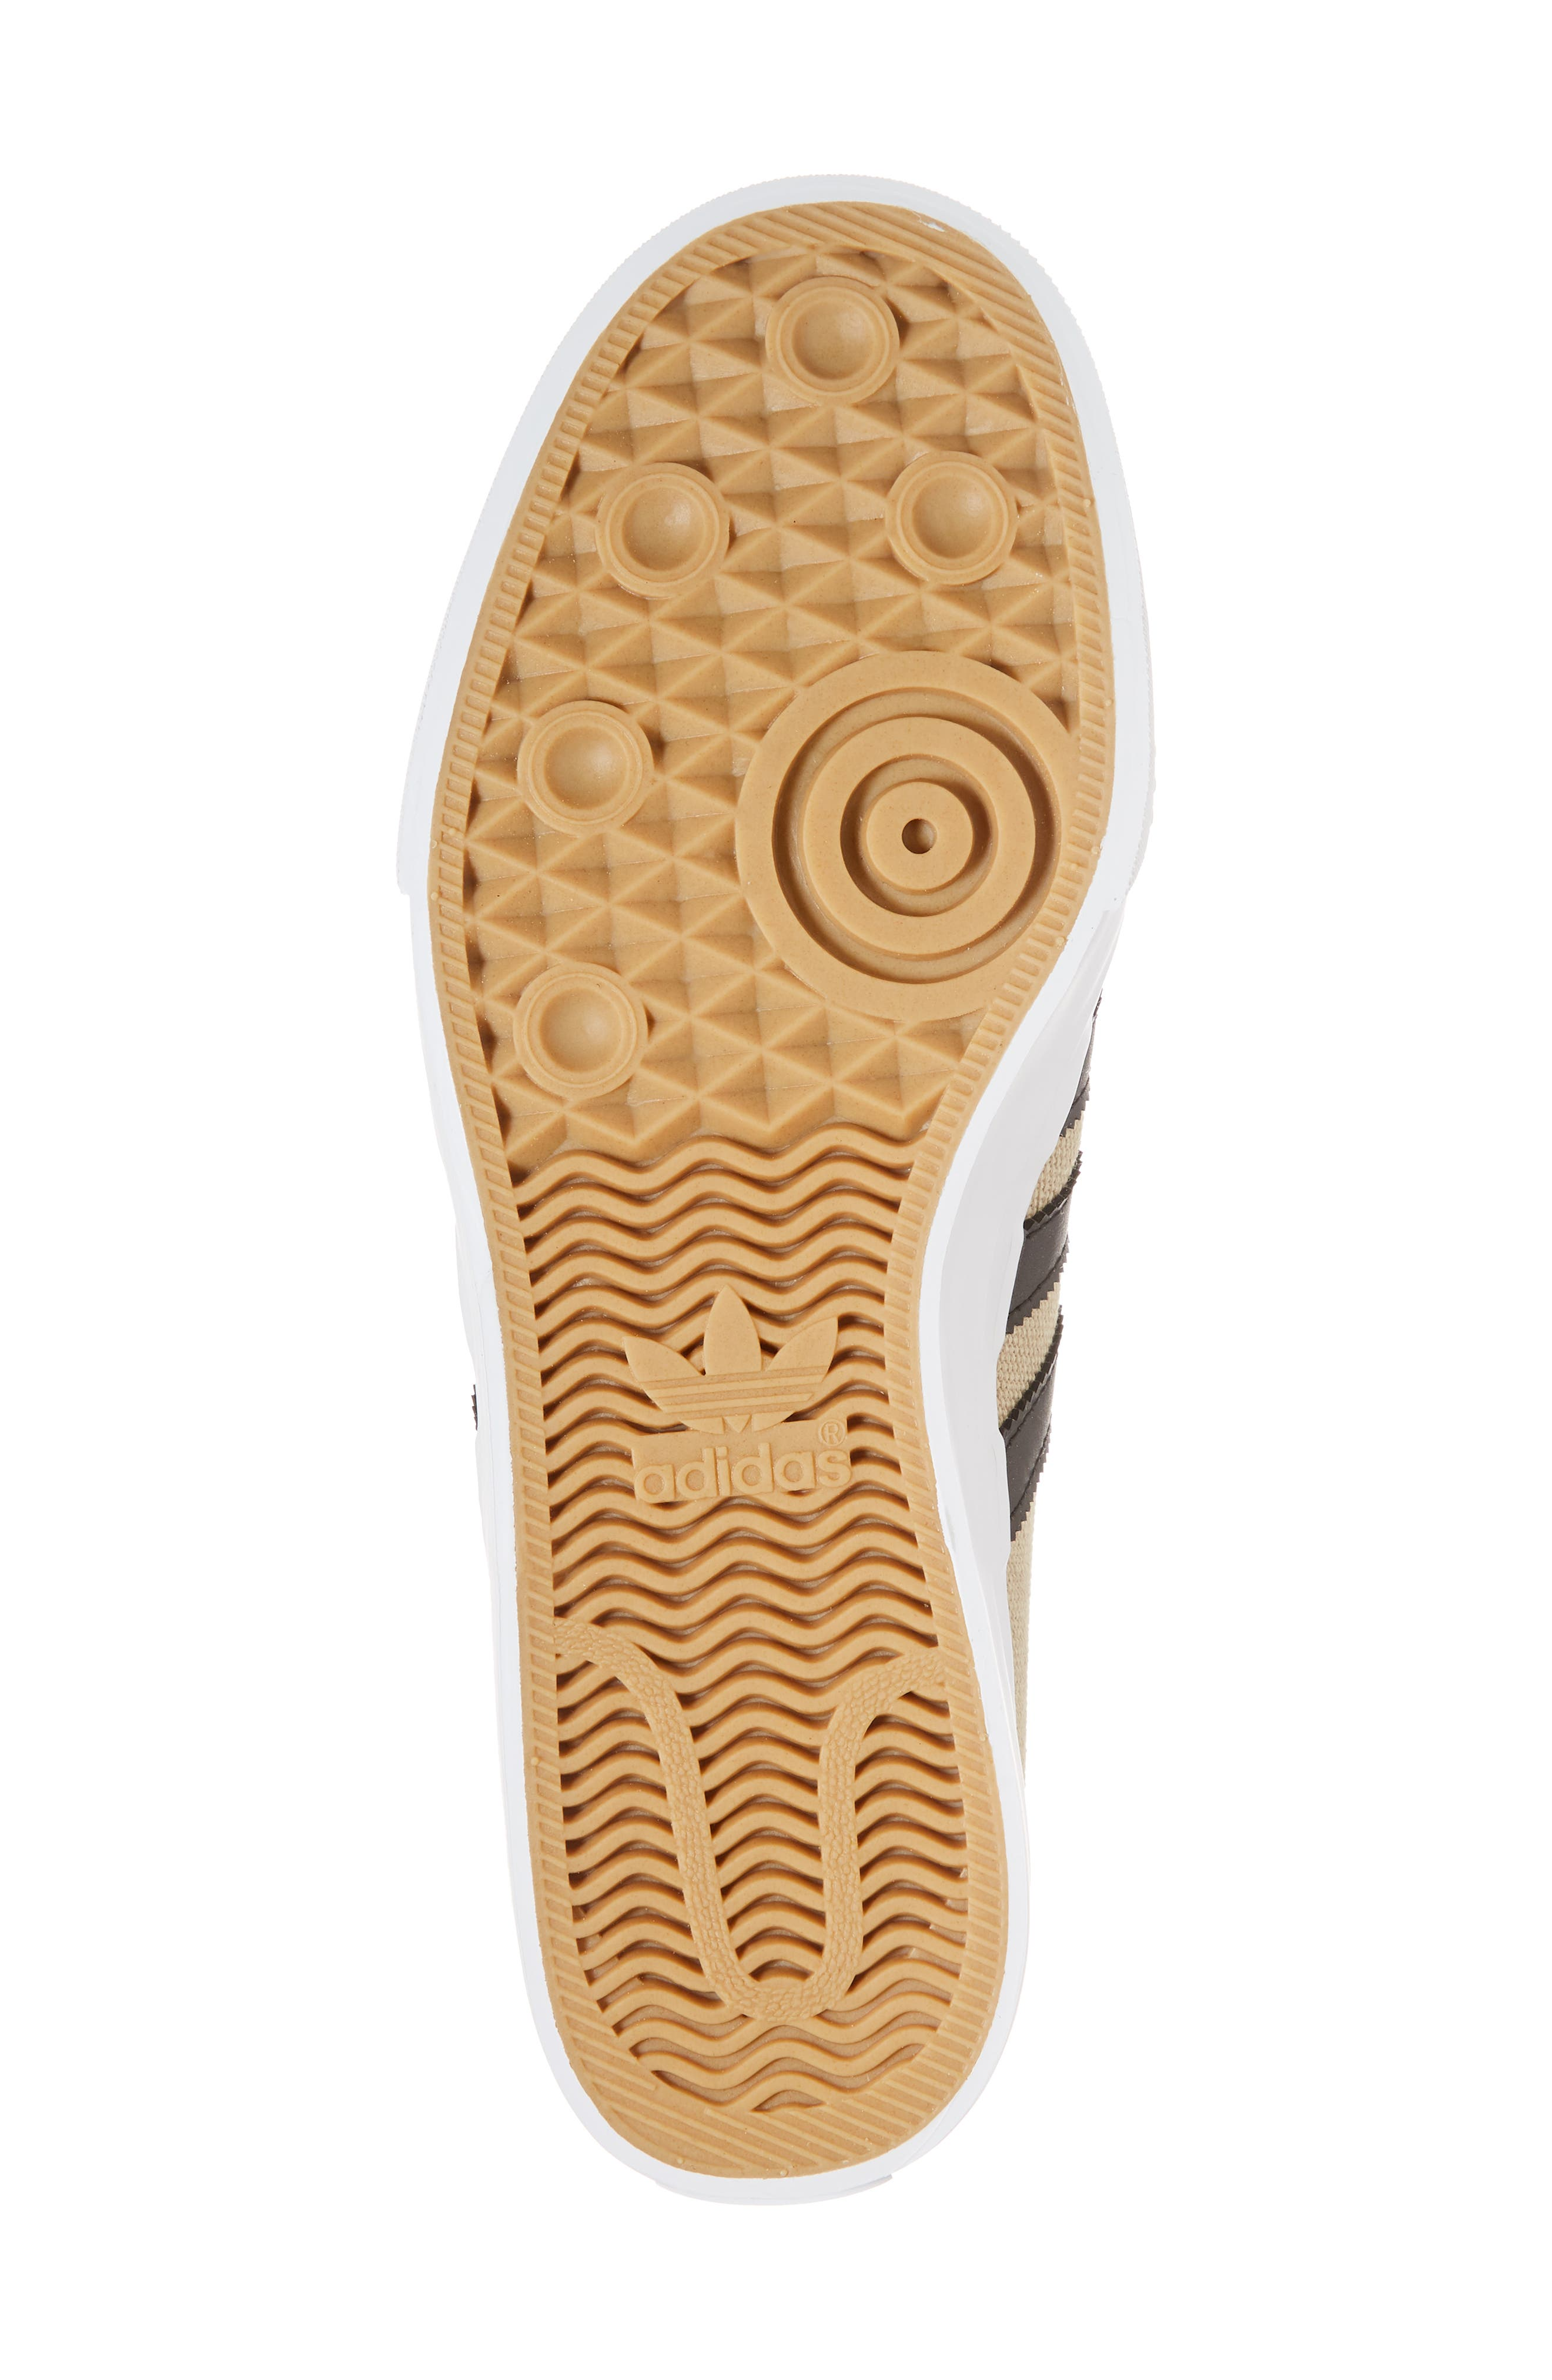 Adiease Premiere Skateboarding Sneaker,                             Alternate thumbnail 6, color,                             Gold/ Core Black/ White